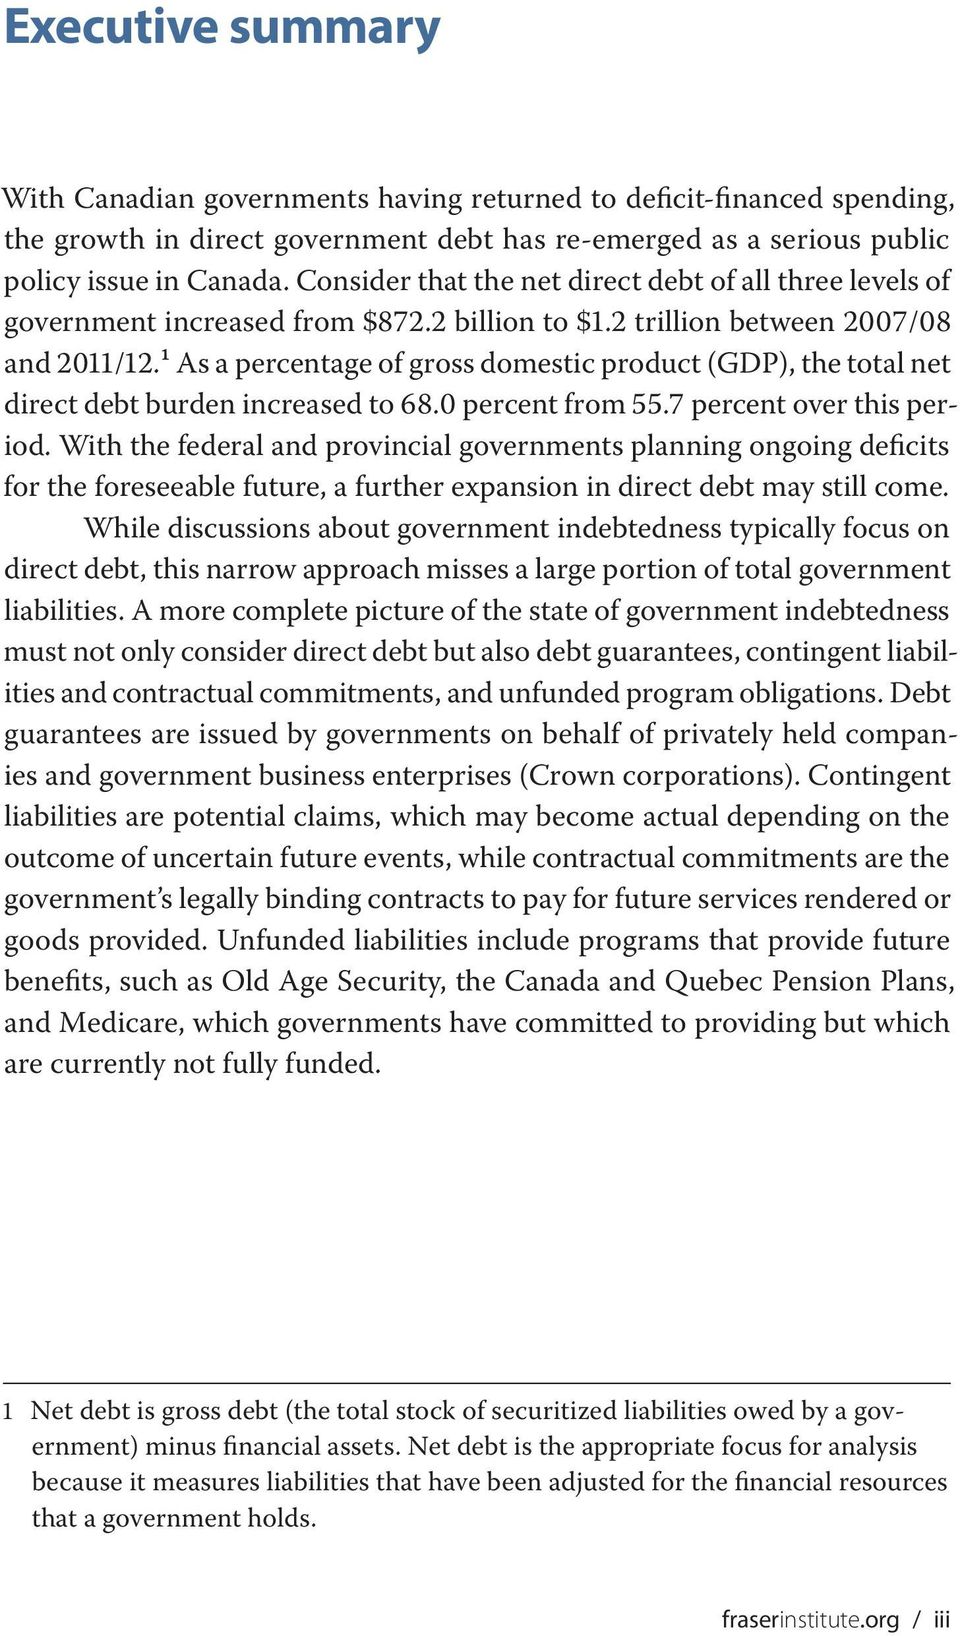 1 As a percentage of gross domestic product (GDP), the total net direct debt burden increased to 68.0 percent from 55.7 percent over this period.